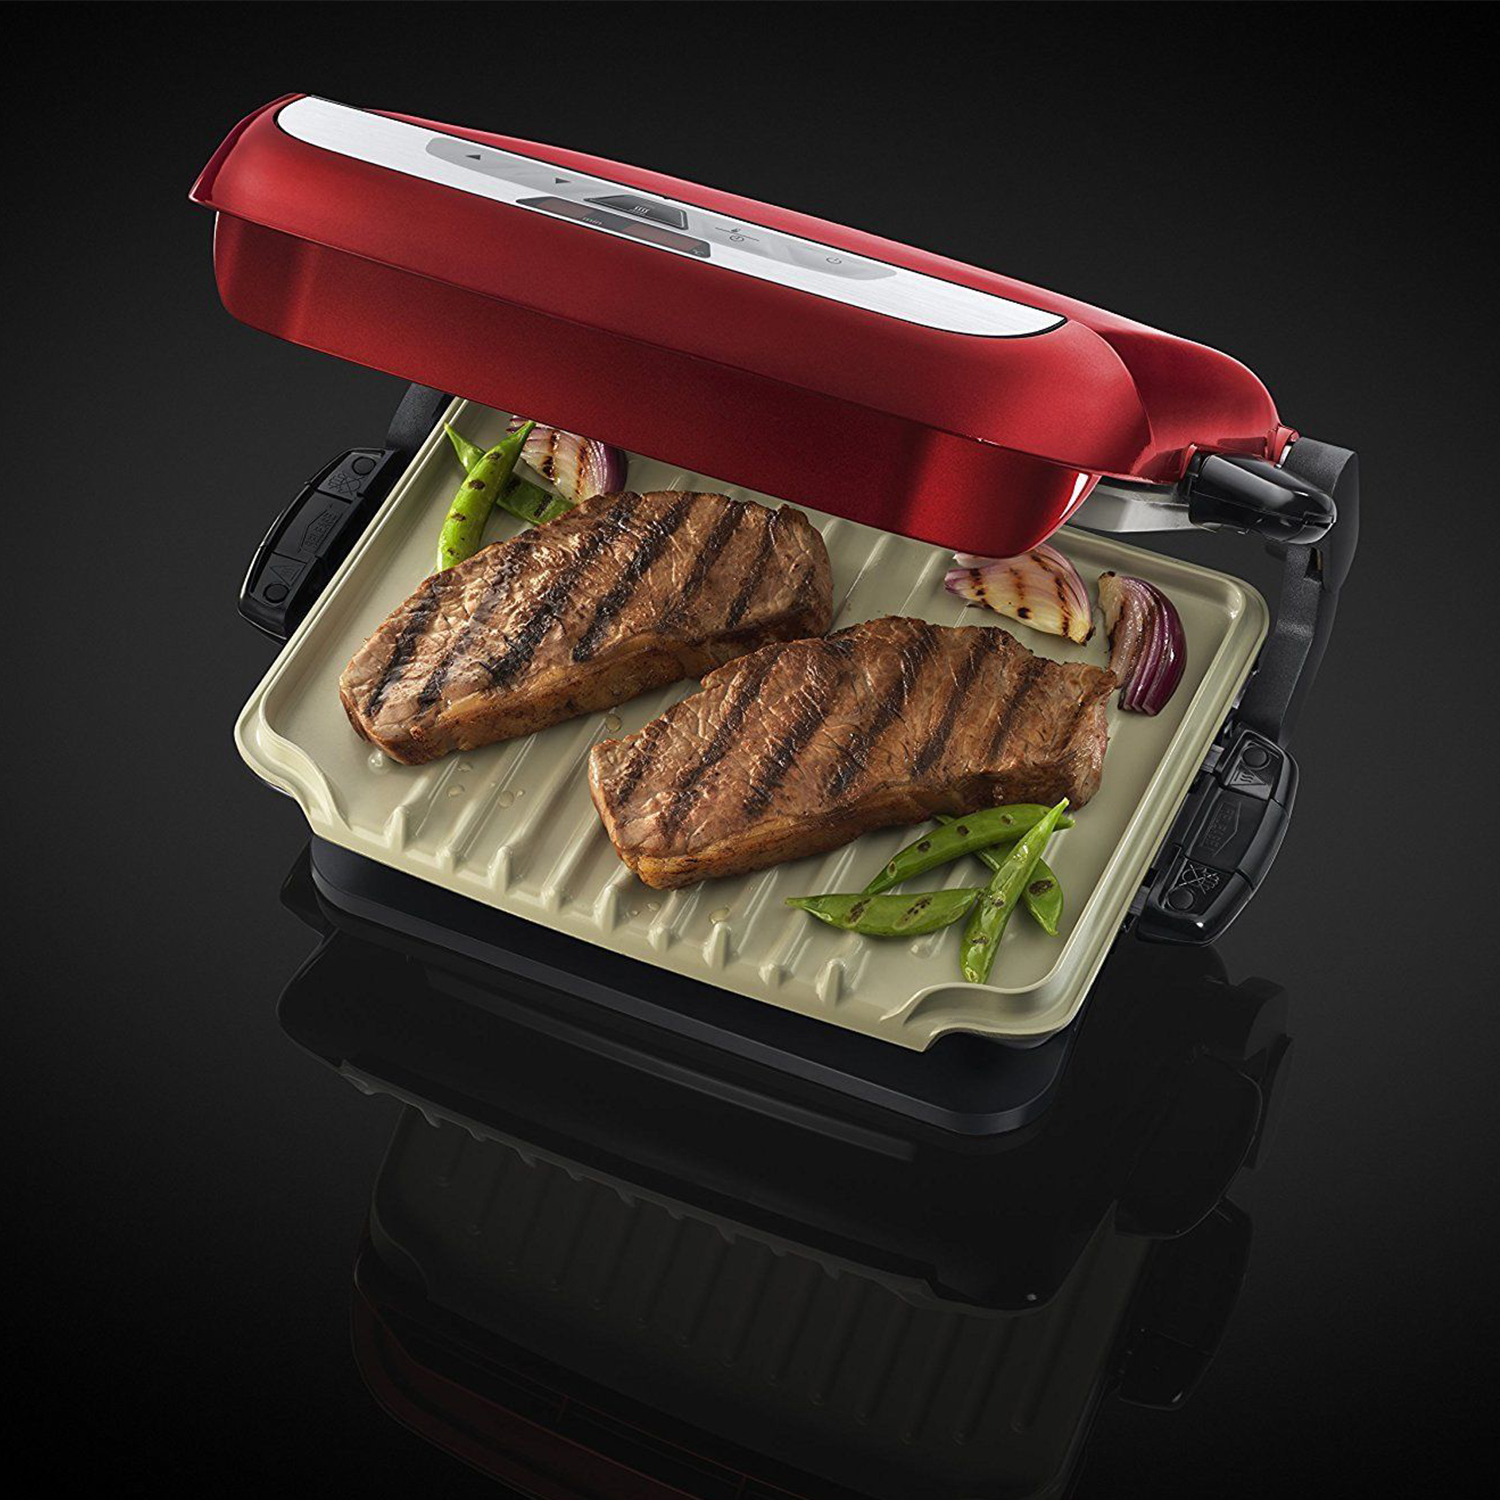 Russell Hobbs Evolve Red Grill 3